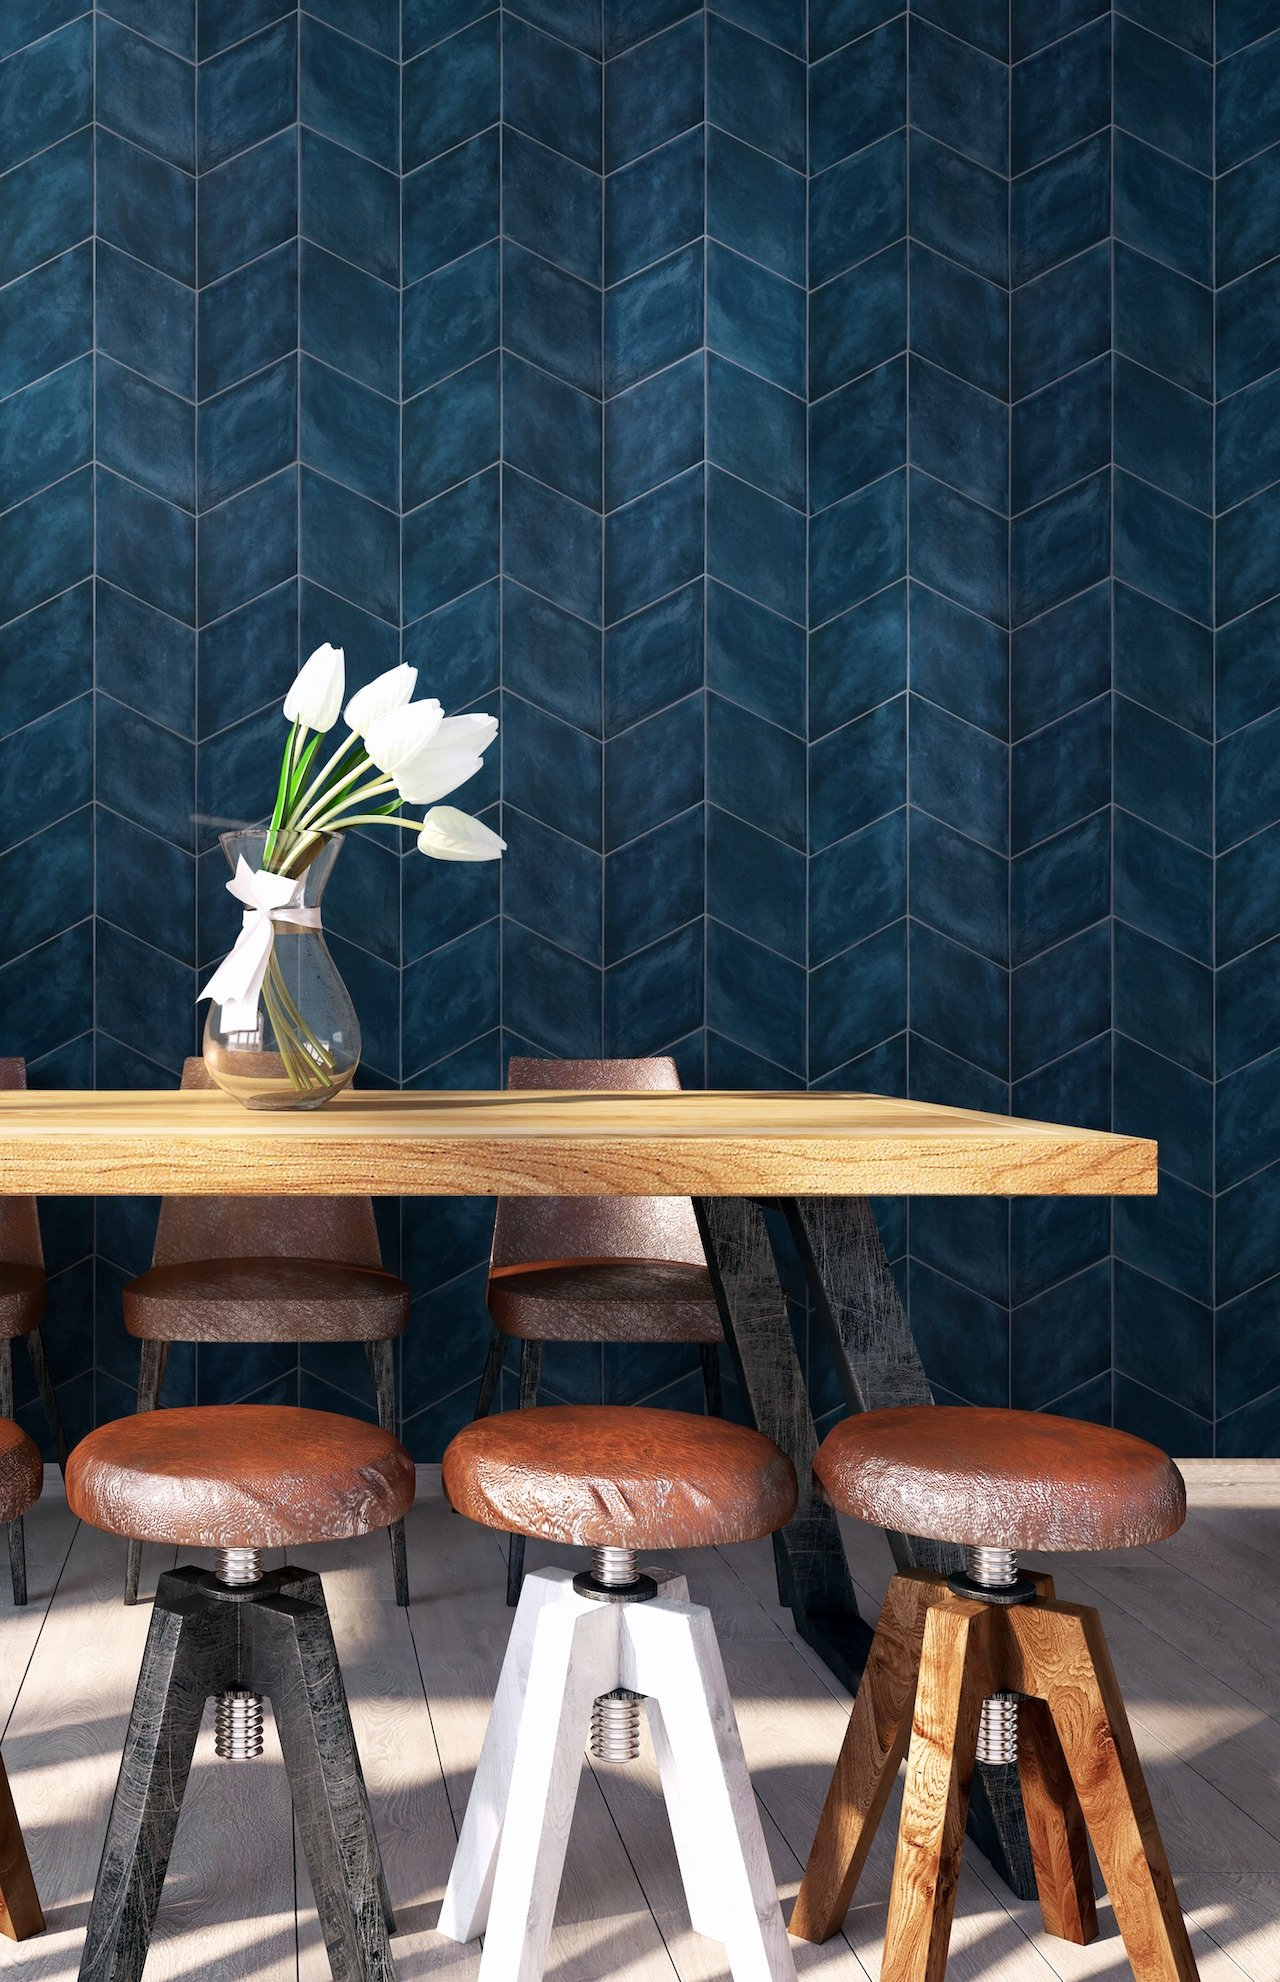 Rombo on walls in cobalt, antiqued and glossy